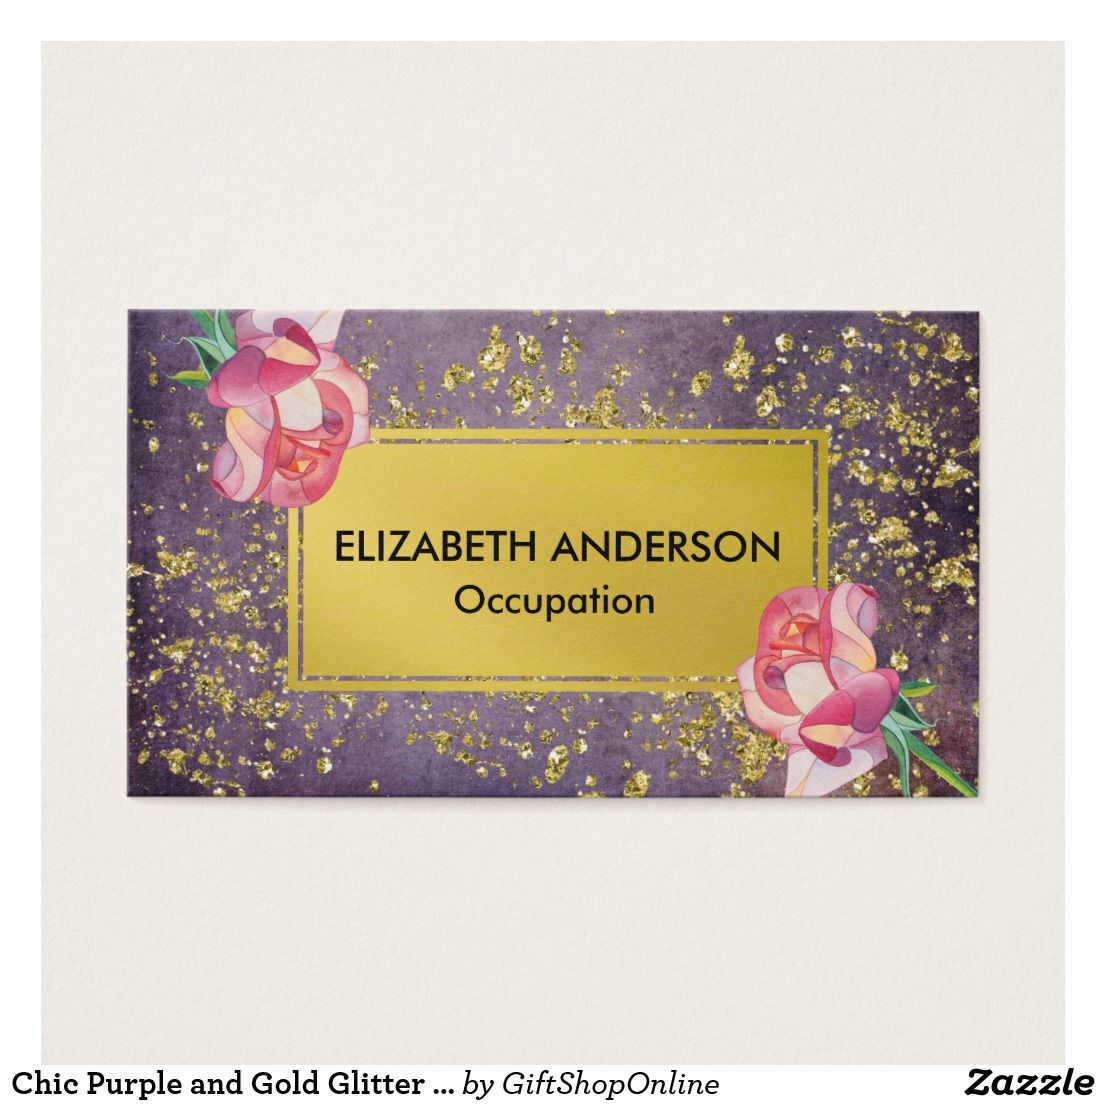 Chic Purple and Gold Glitter Rose Business Card | Gold glitter